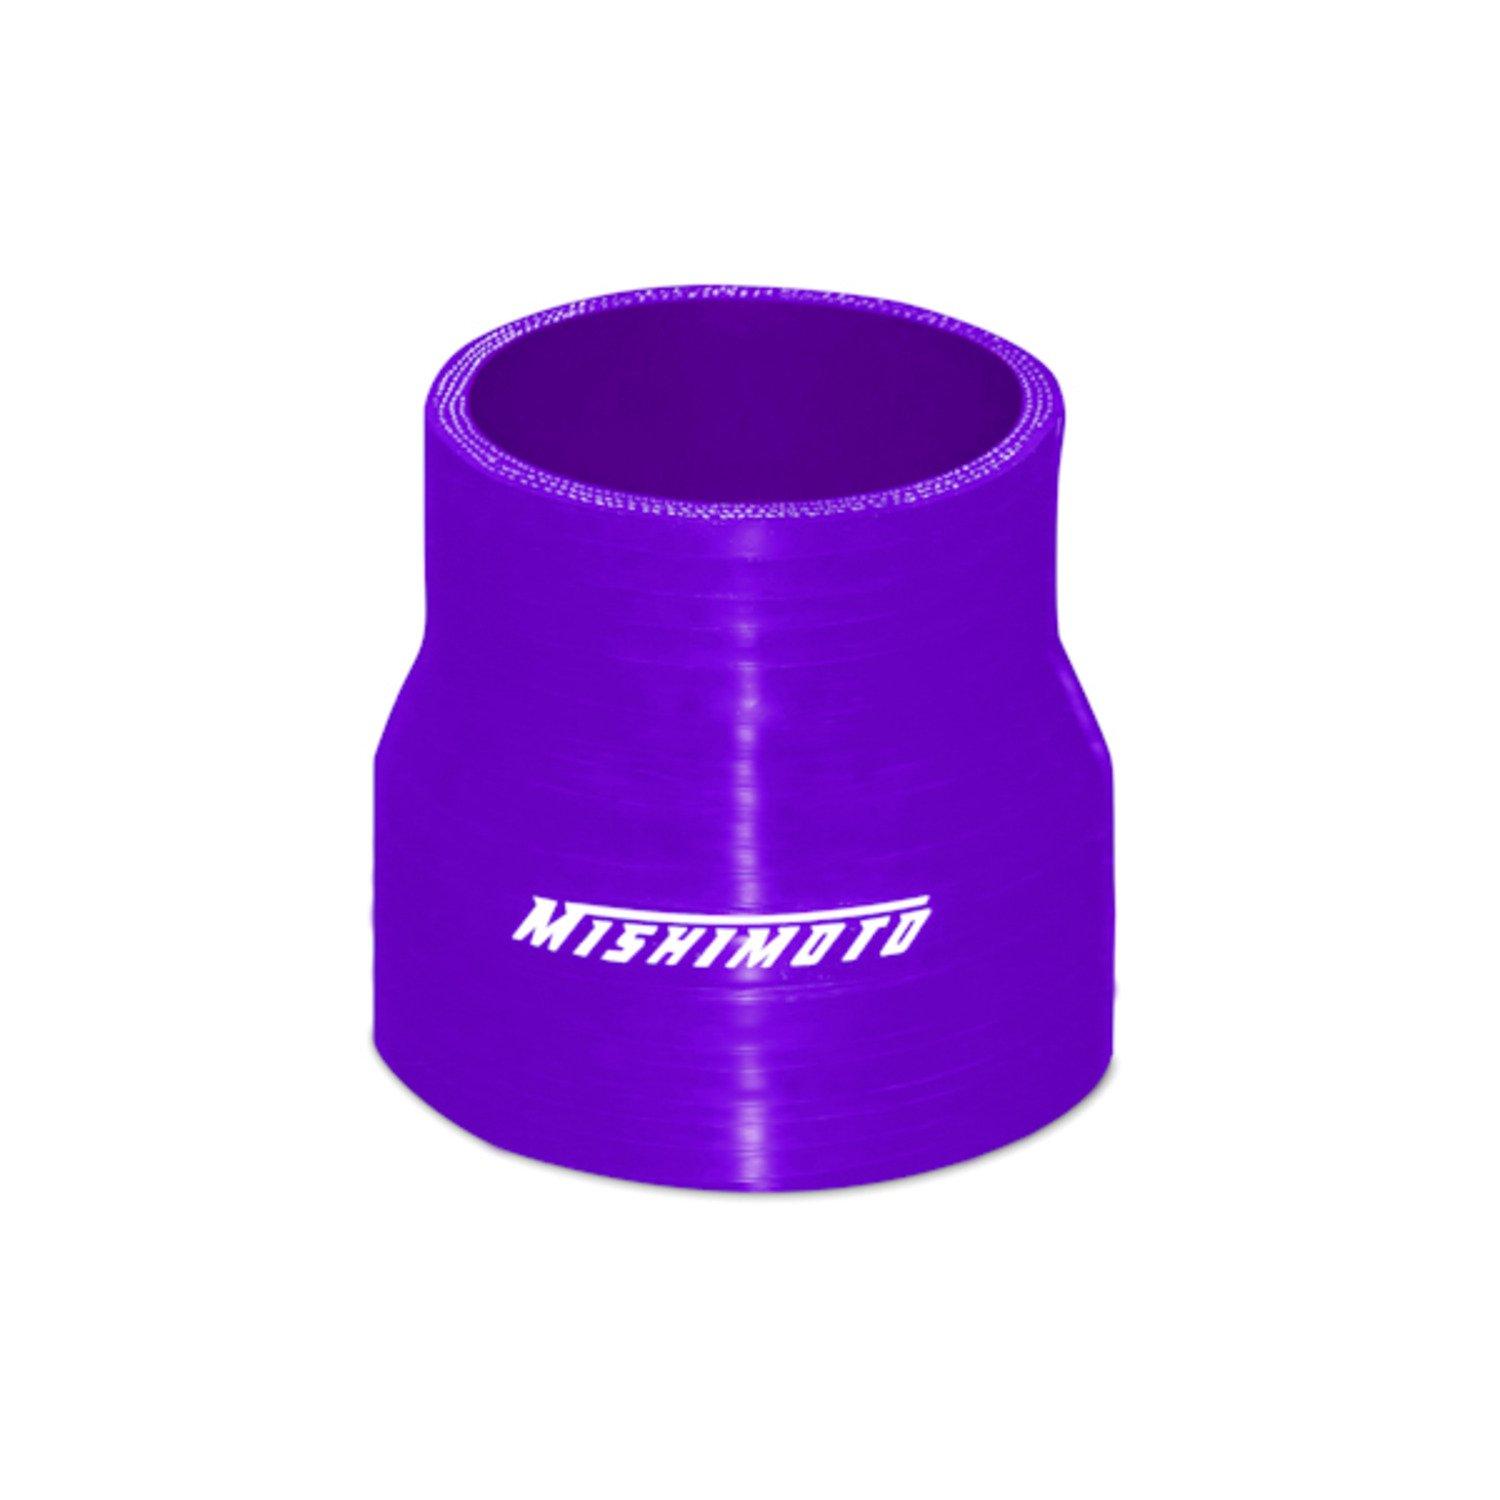 Mishimoto MMCP-2530PR 2.5' to 3' Silicone Transition Coupler, Purple